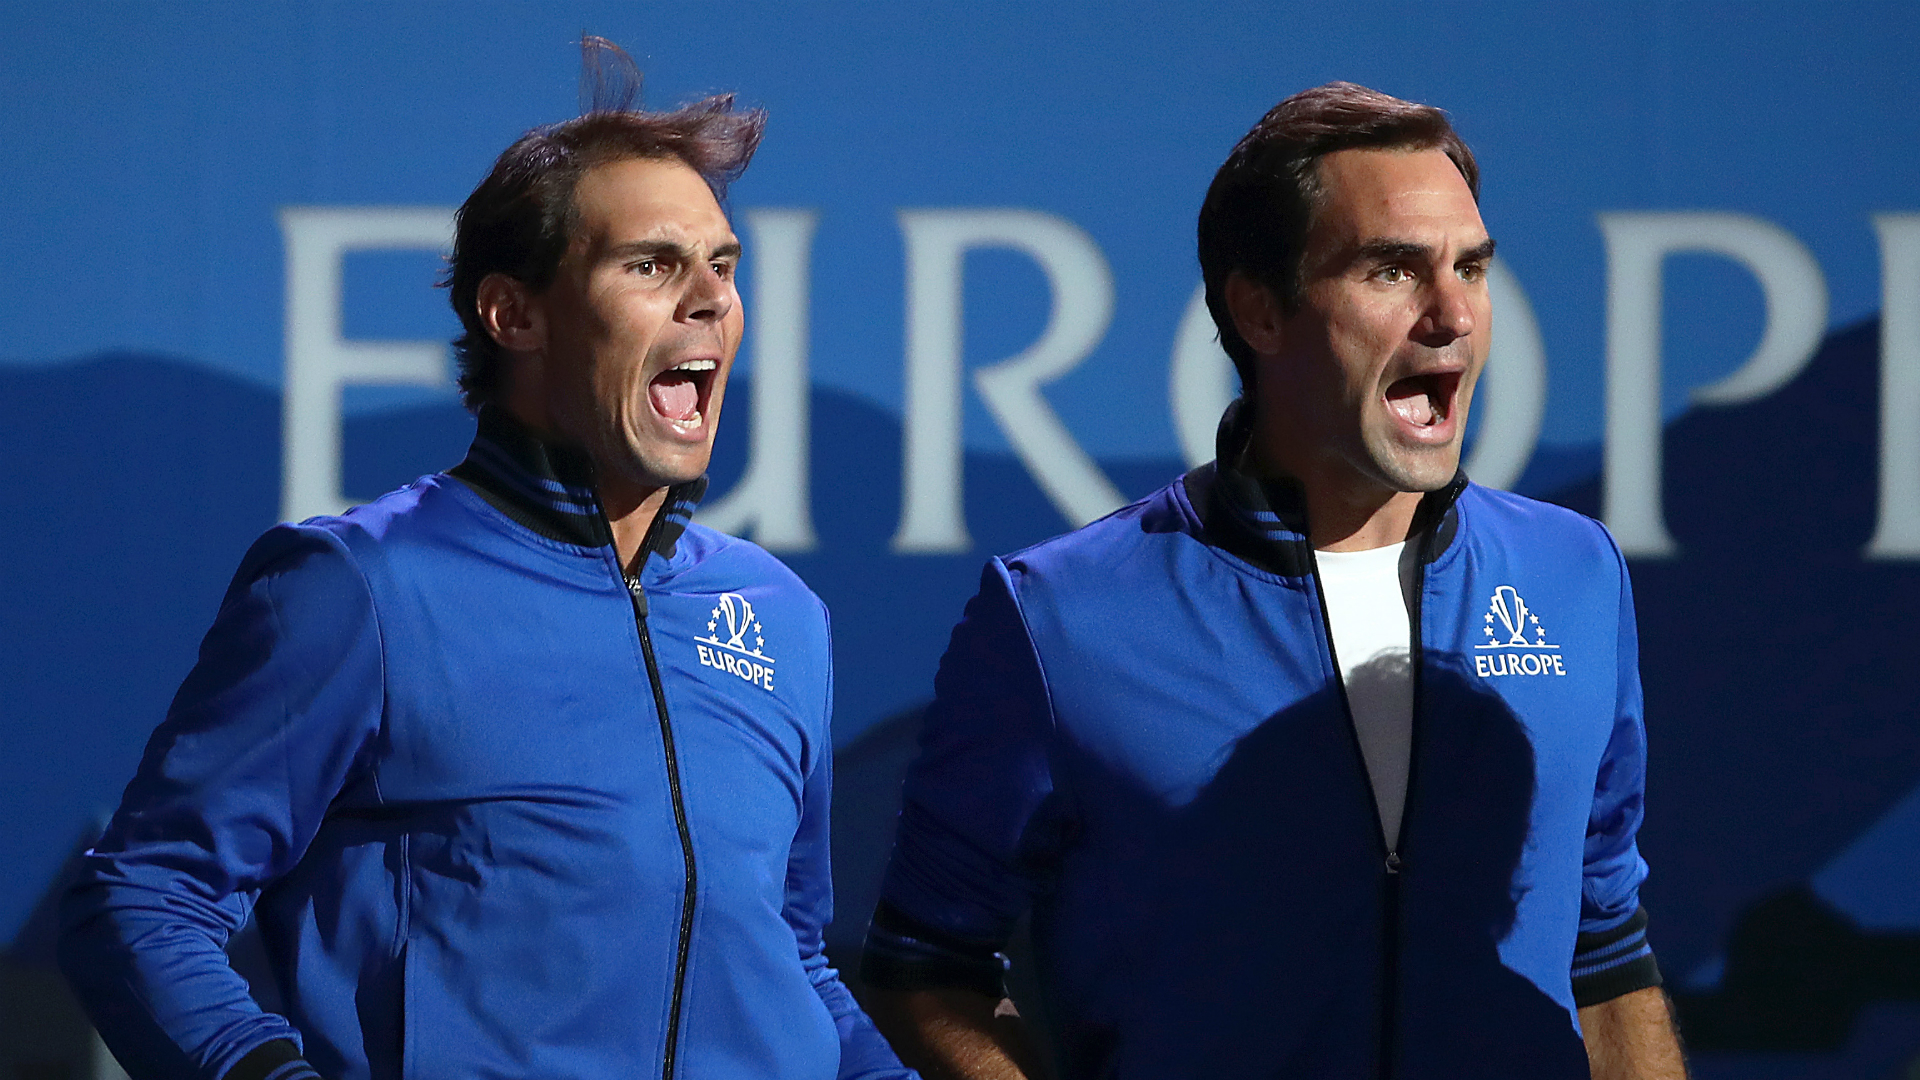 Nadal says Federer rivalry should not be compared to Ronaldo and Messi head-to-head